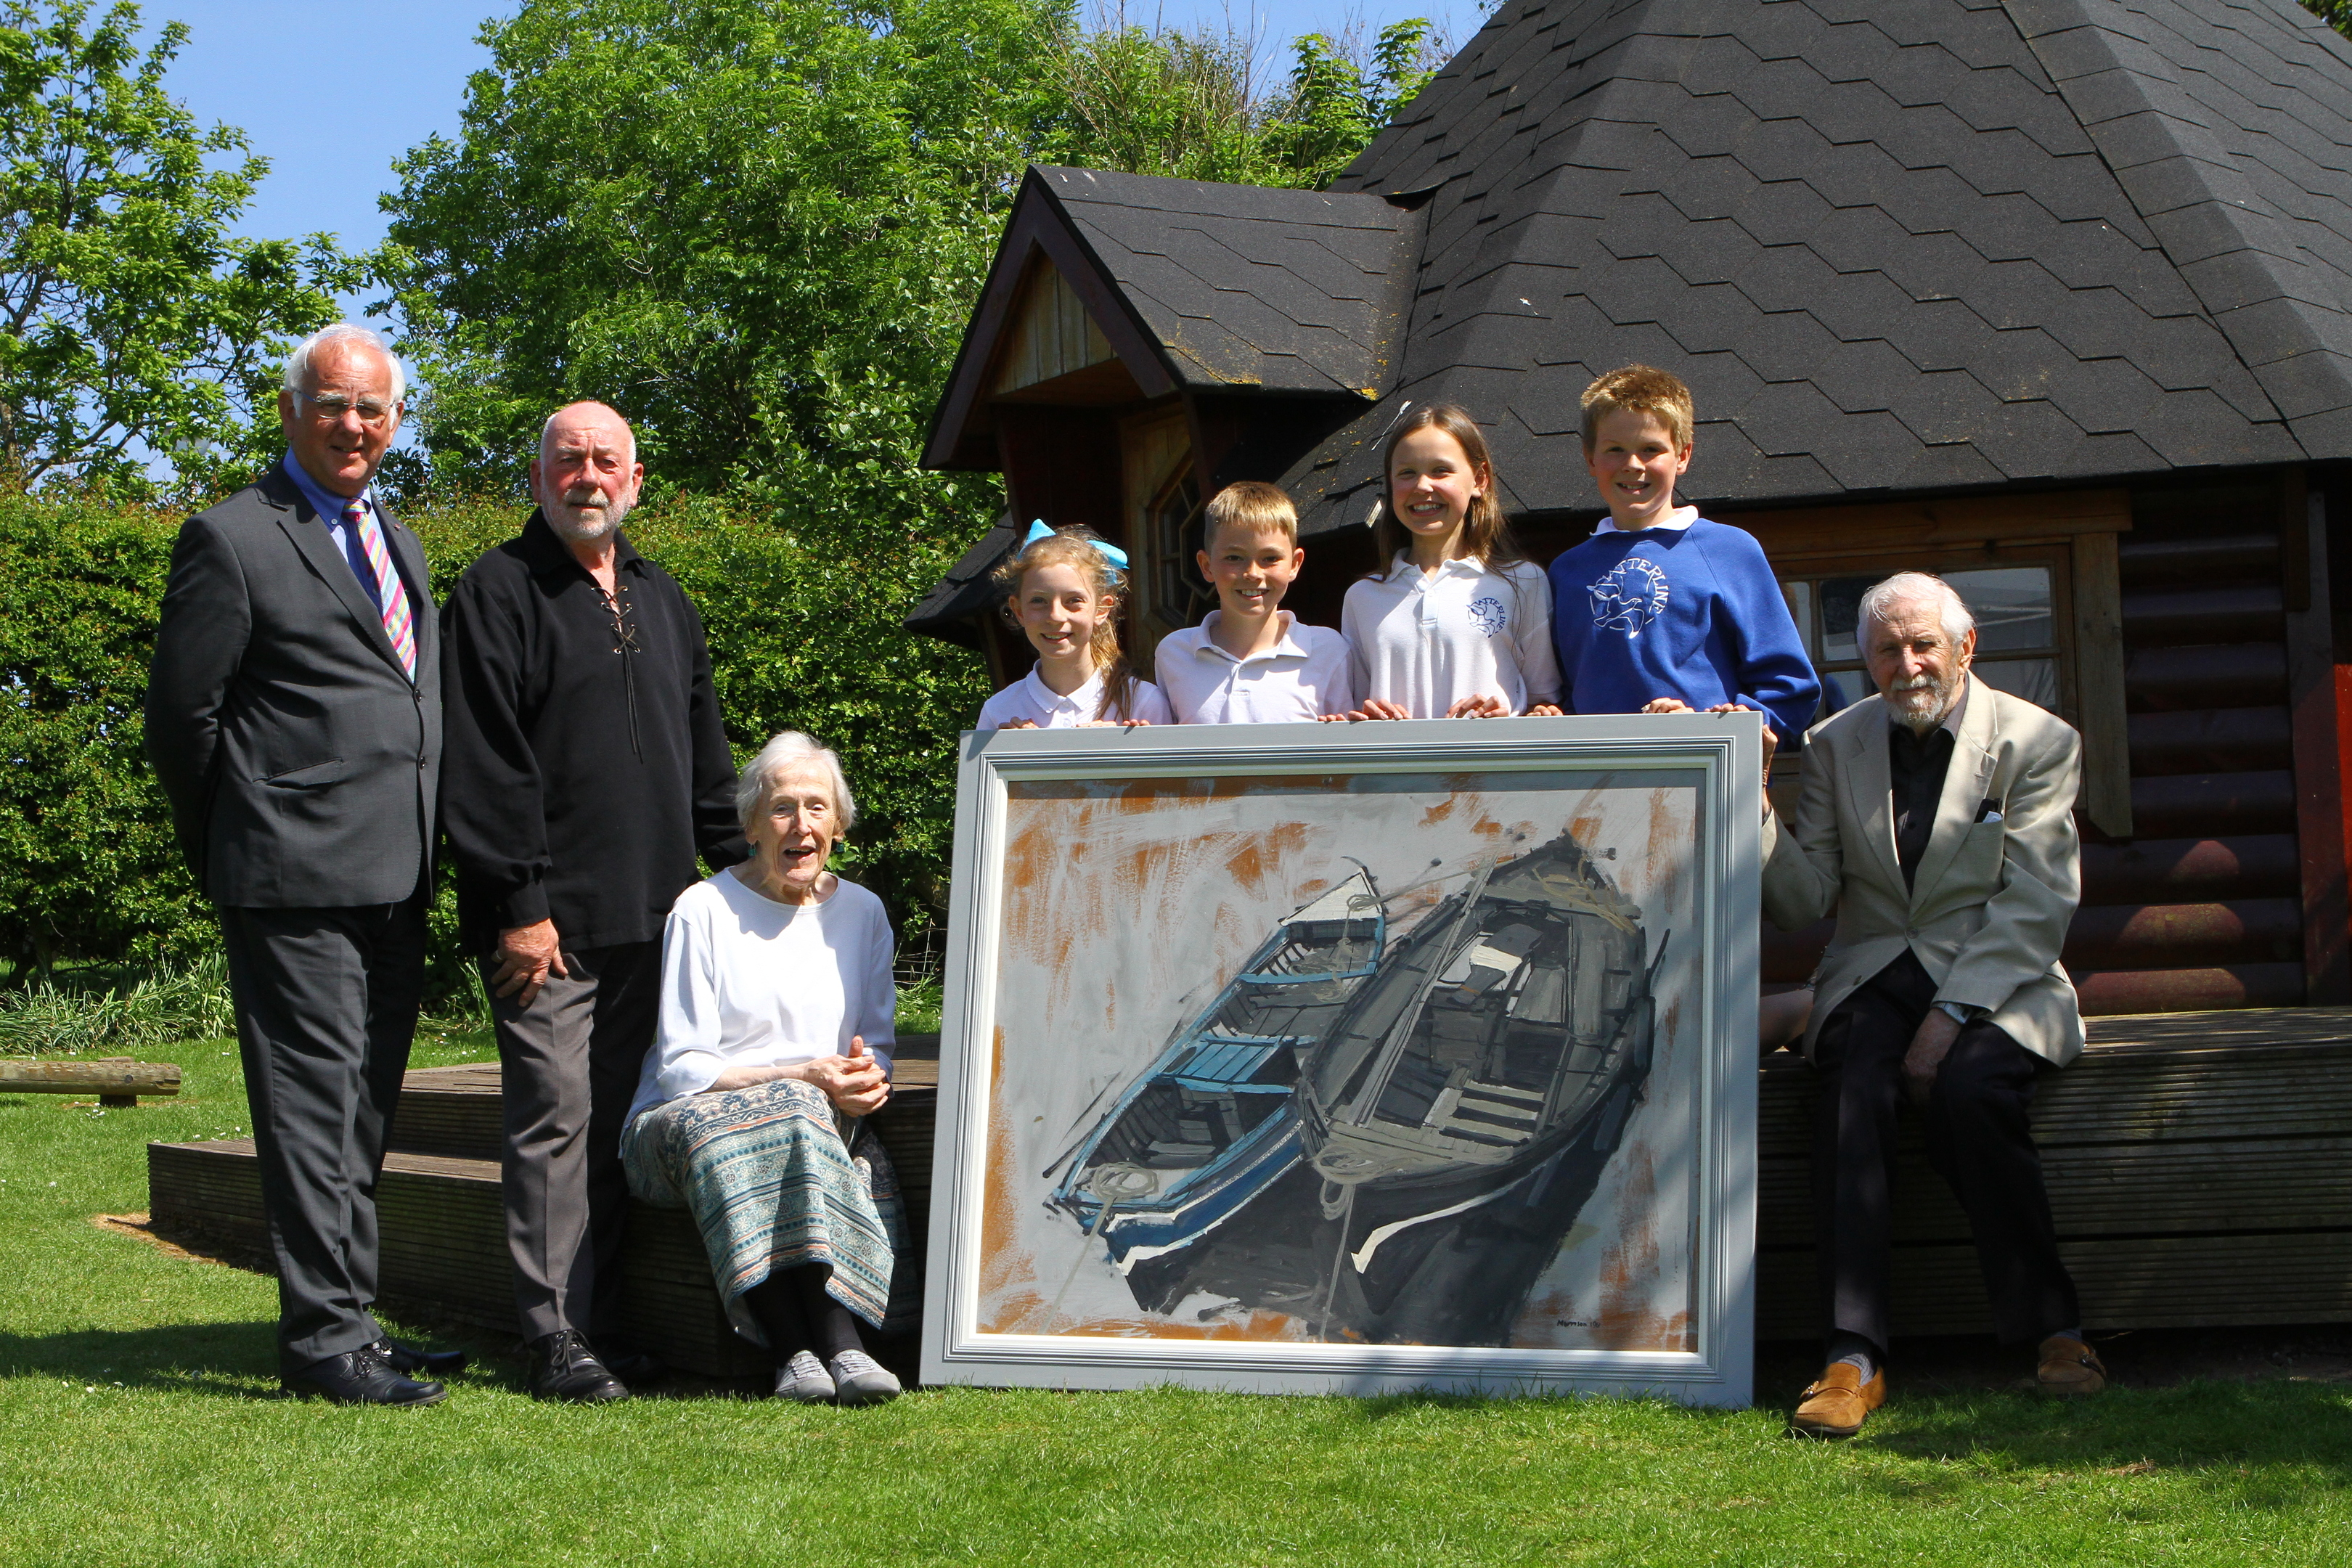 At an event earlier this year, Angus artist James Morrison R.S.A, R.S.W, with his painting Catterline Boats with (from left), Gordon Ritchie,  Dave Ramsay, Ann Keddie and pupils Lily Buchanan, Cameron Ramsay, Hannah Boggon and Magnus Gowland.